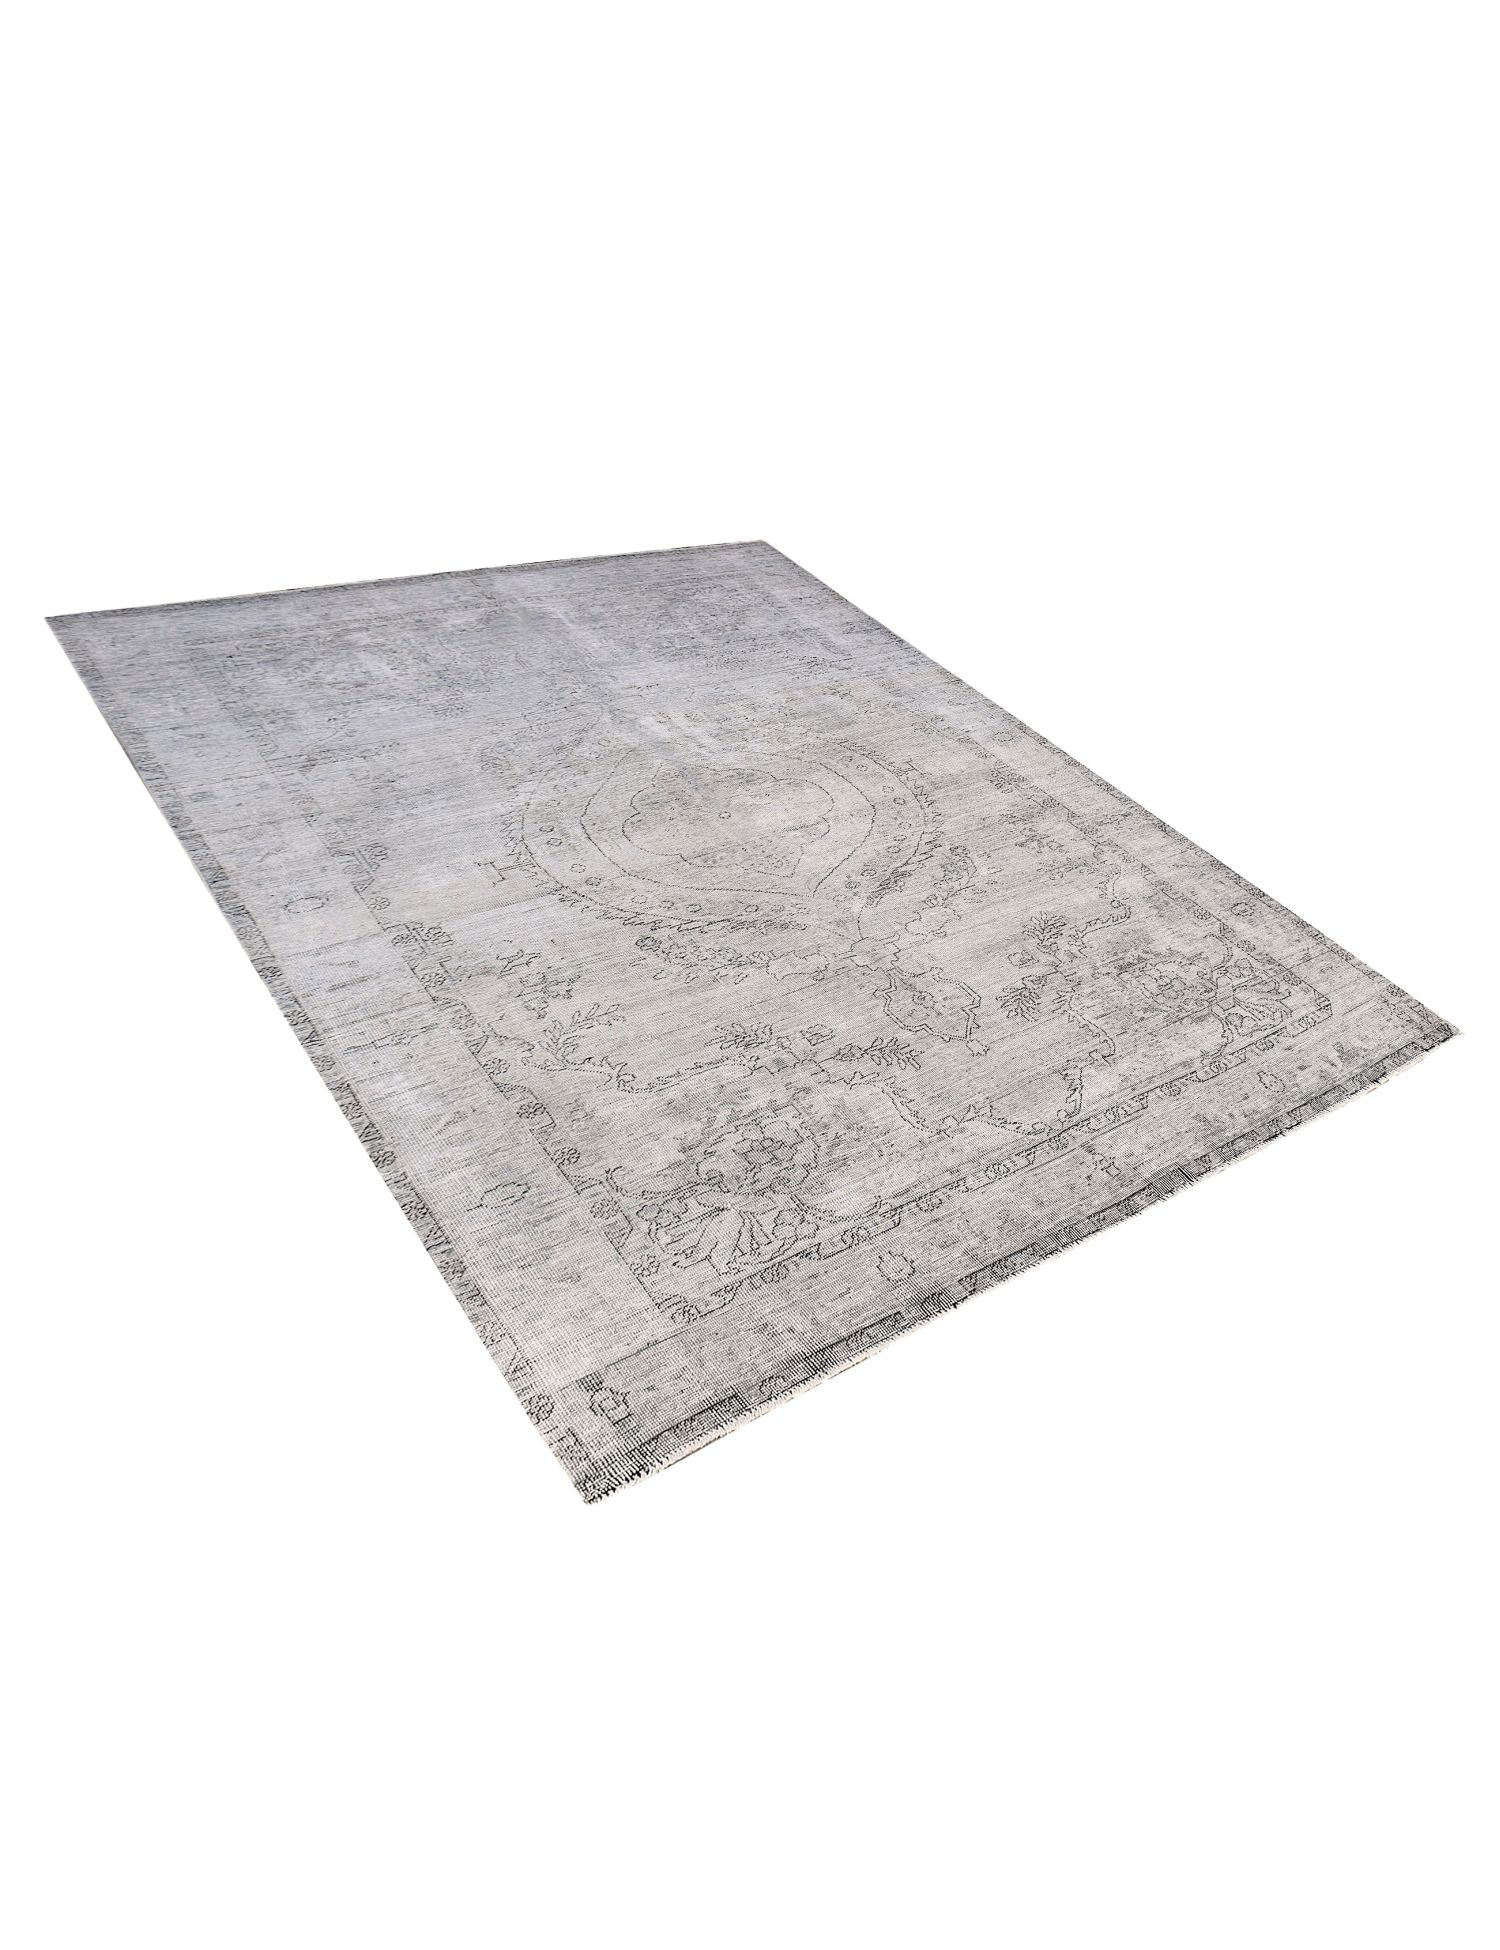 Vintage Carpet  grey <br/>283 x 196 cm